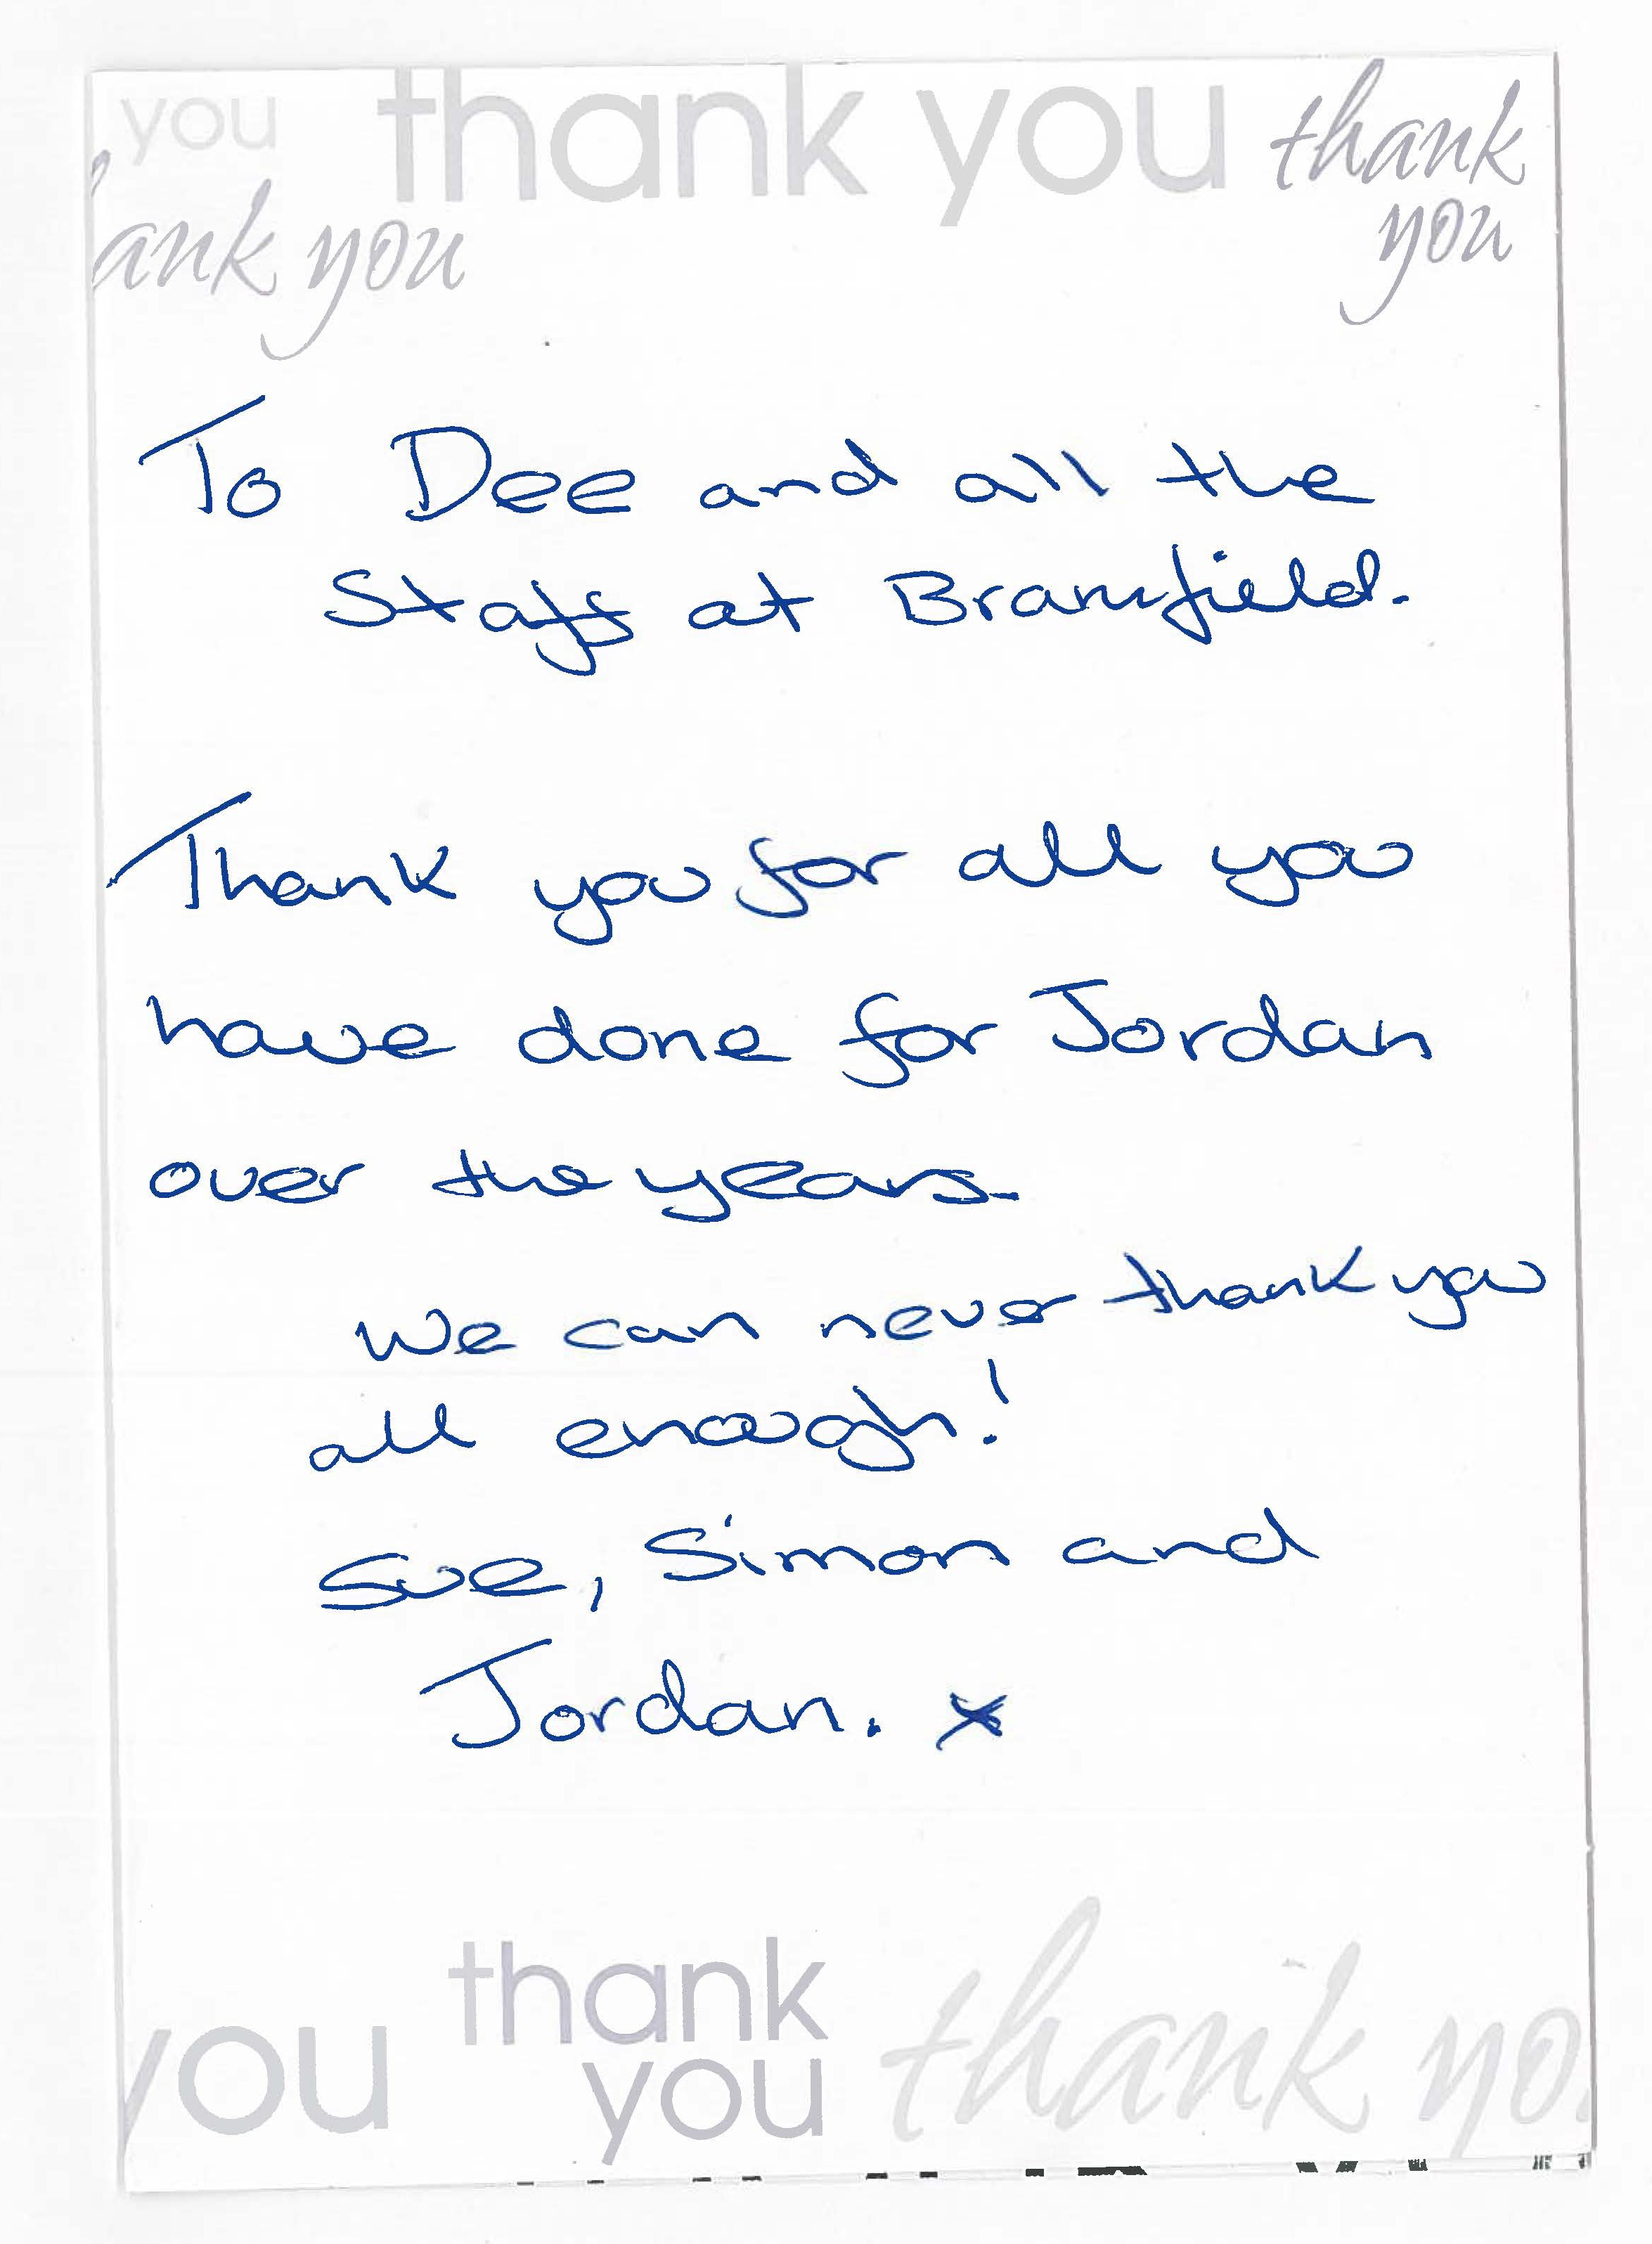 Thank You Card From Year 11 Pupil Parents To Headteacher 2